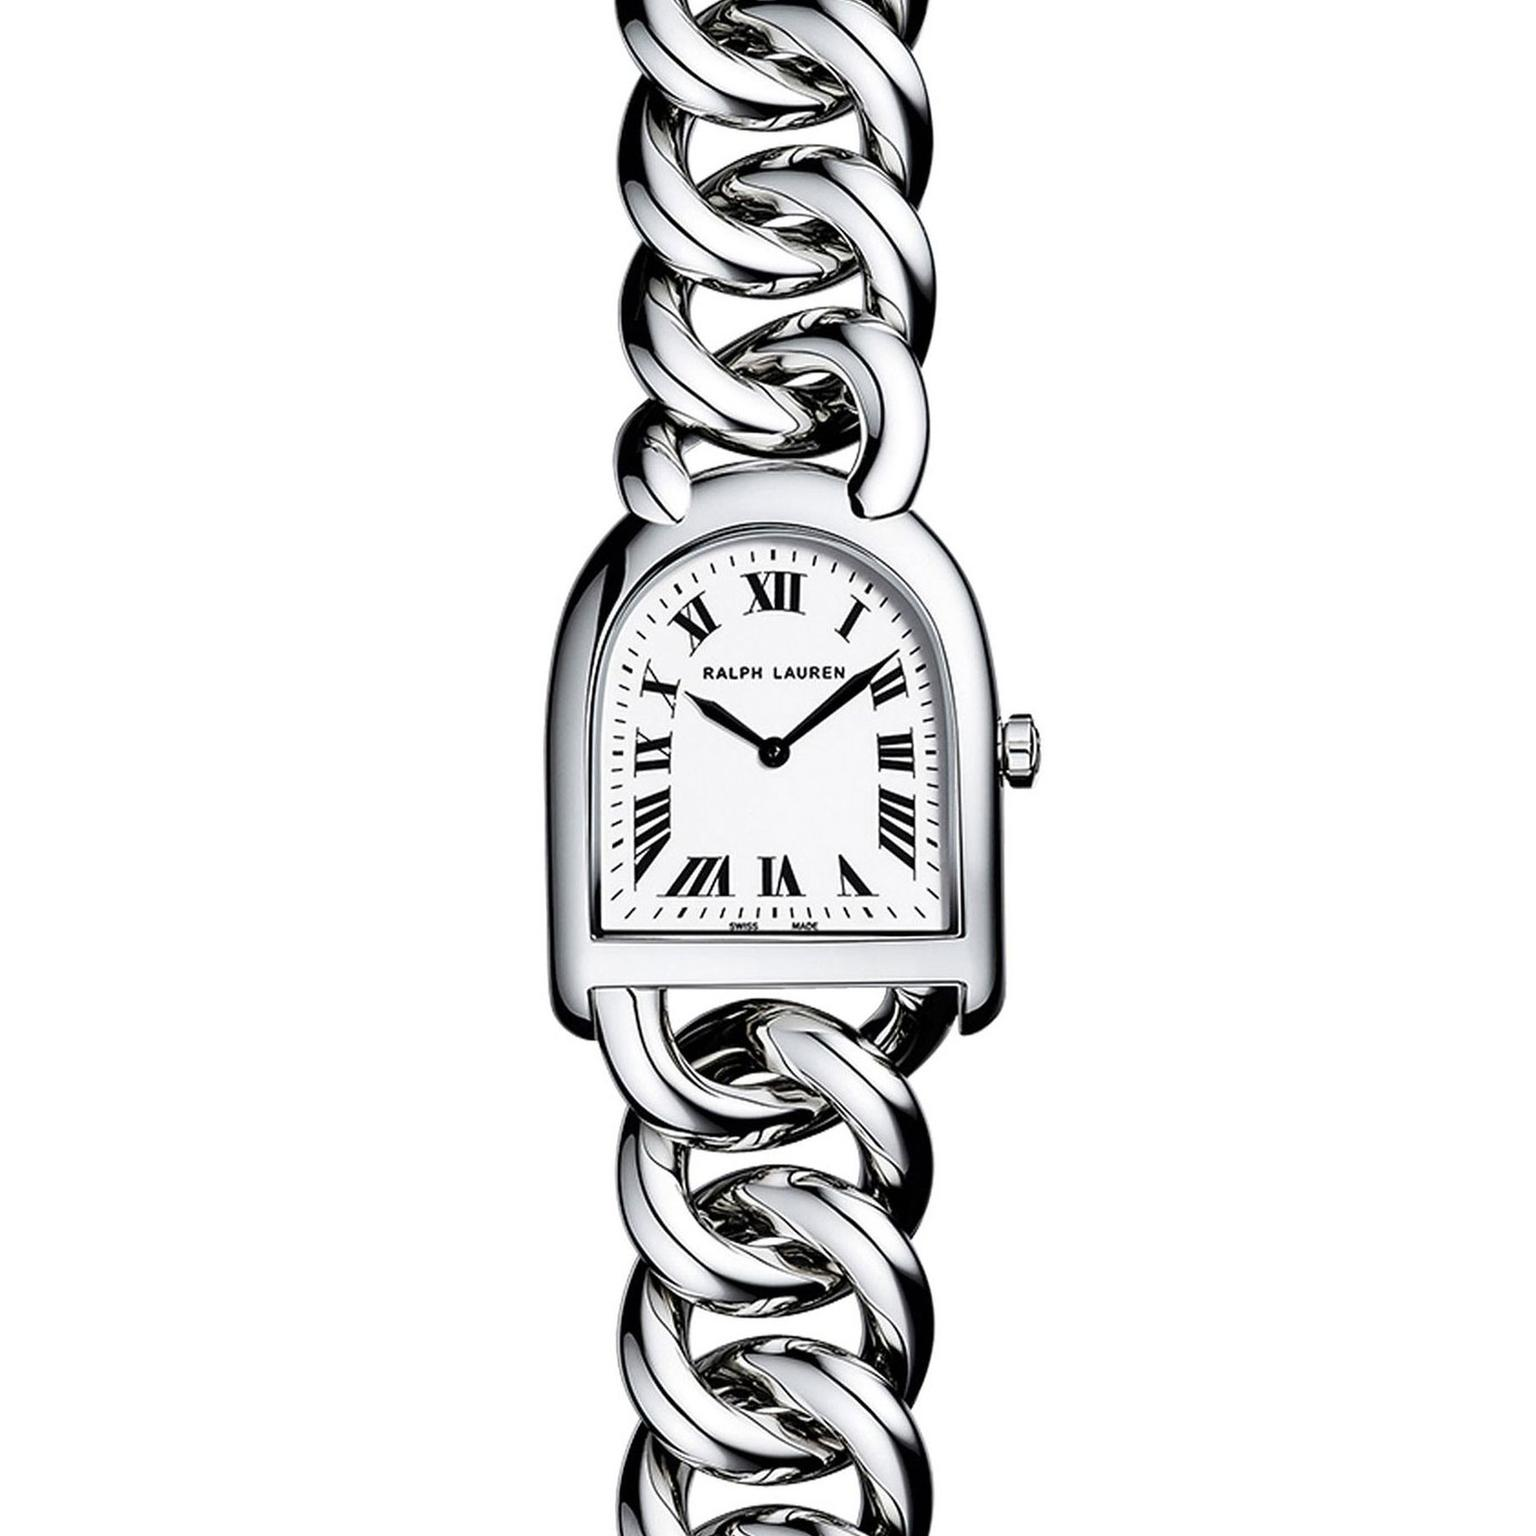 Petite Stirrup watch in stainless steel   Ralph Lauren   The ... 2dfb8787f05